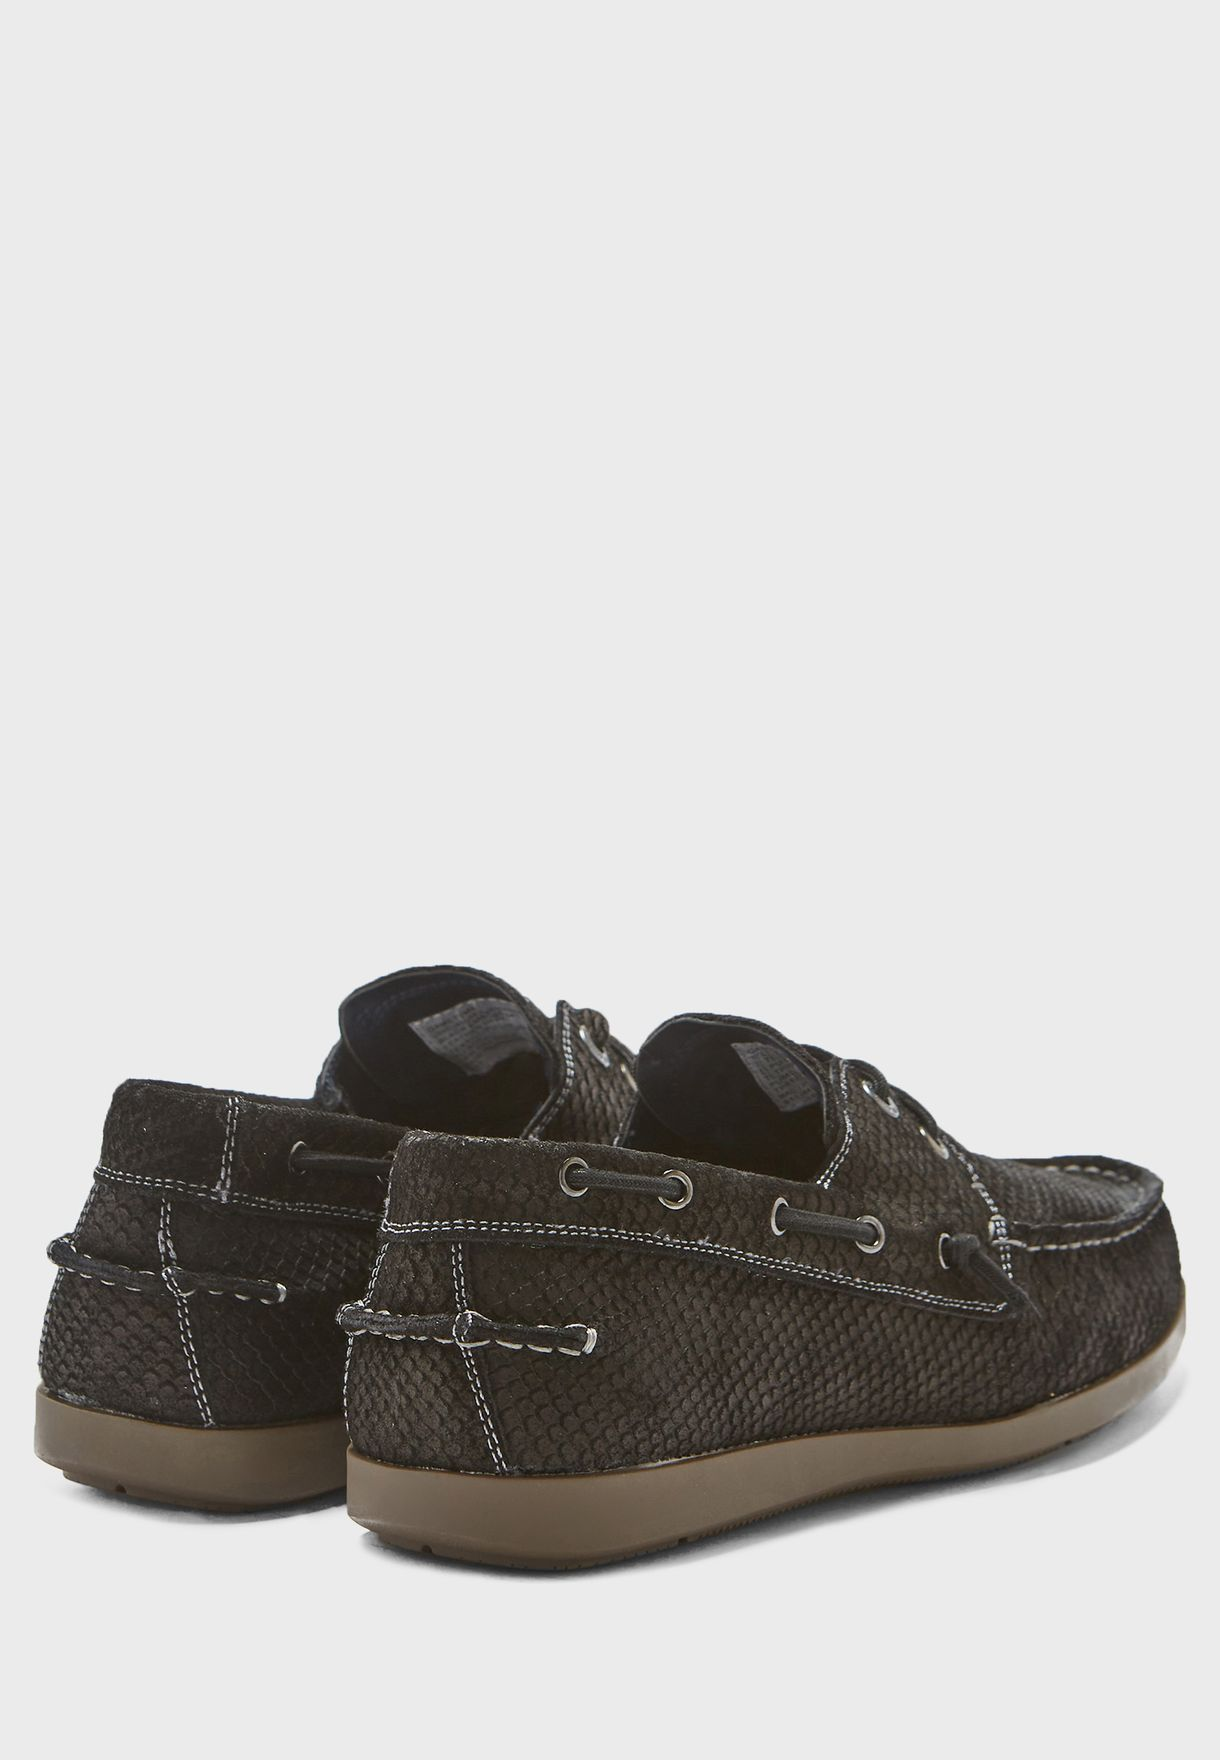 Gametyme Snake Print Boat Shoes